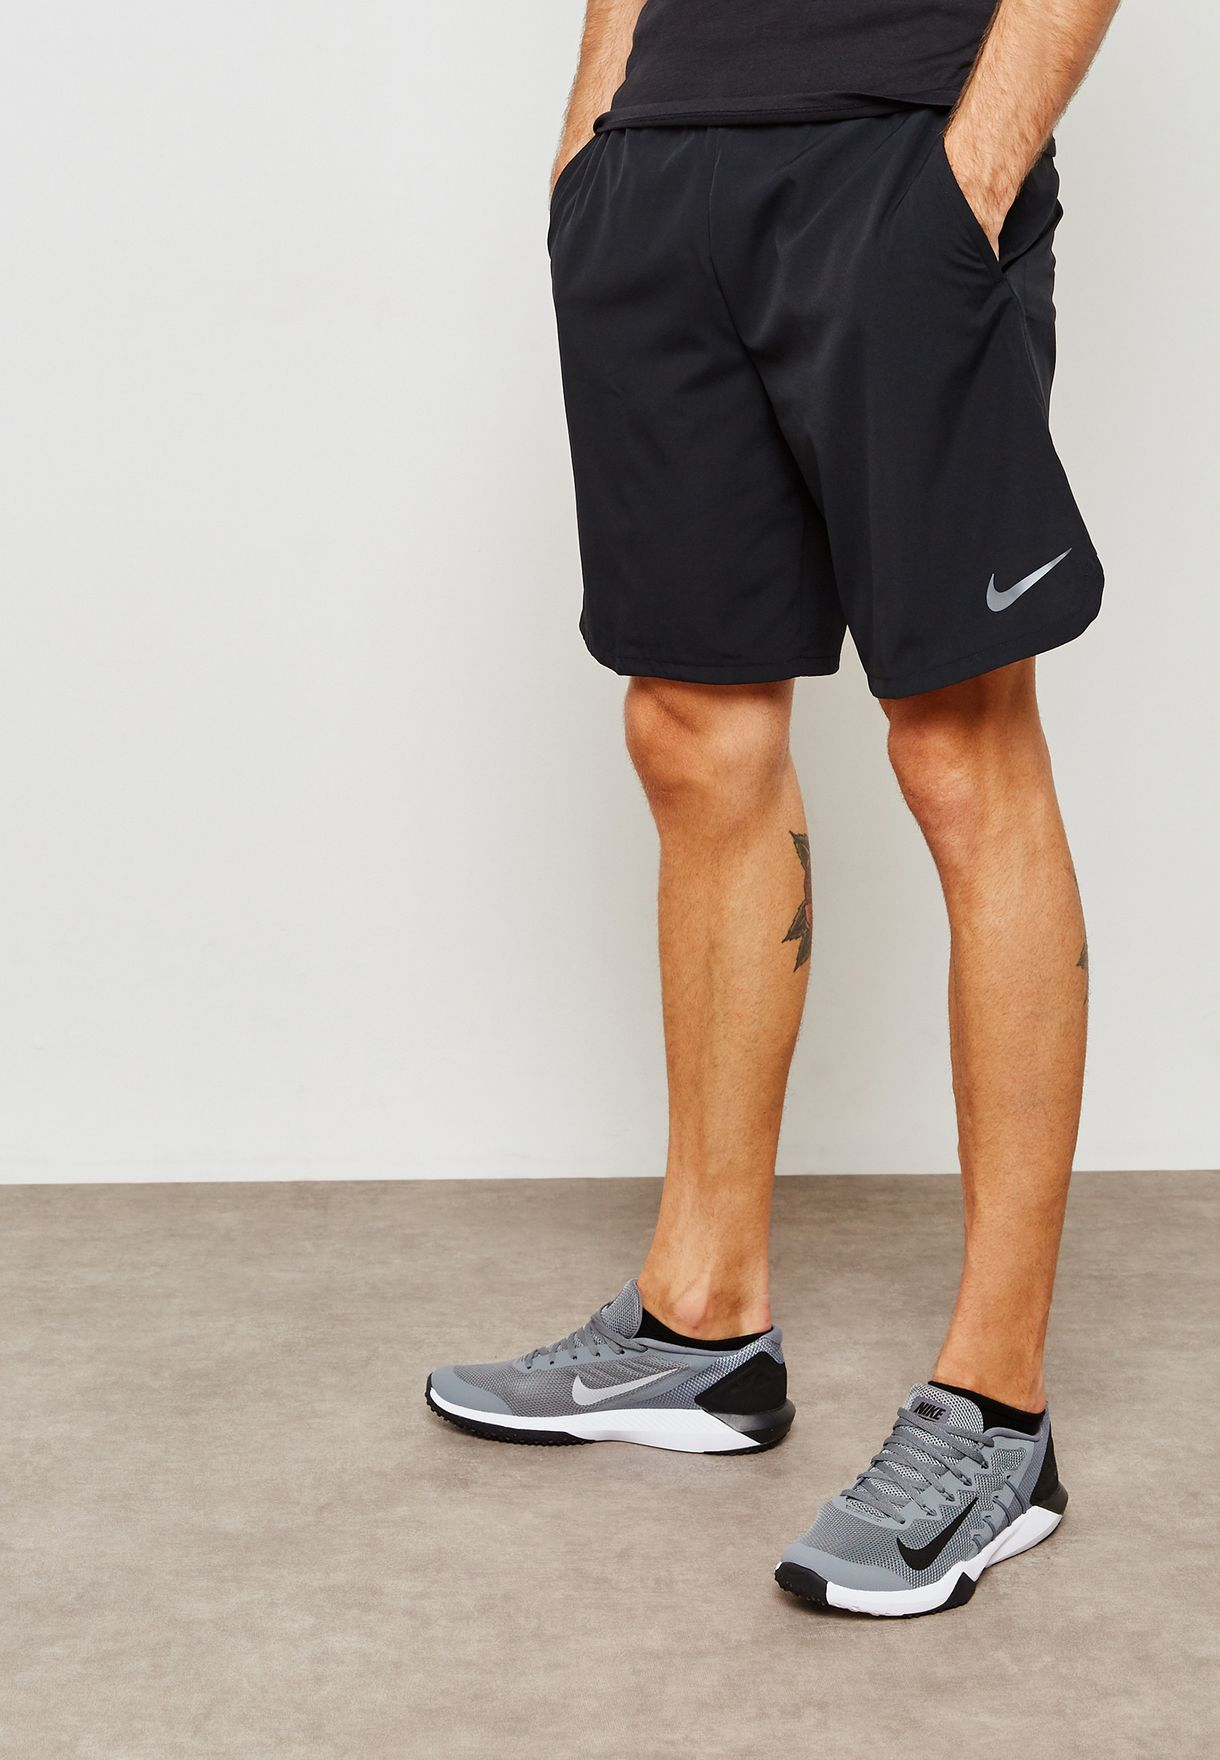 015055703740 Shop Nike black Flex Woven 2.0 Shorts 927526-010 for Men in Saudi ...